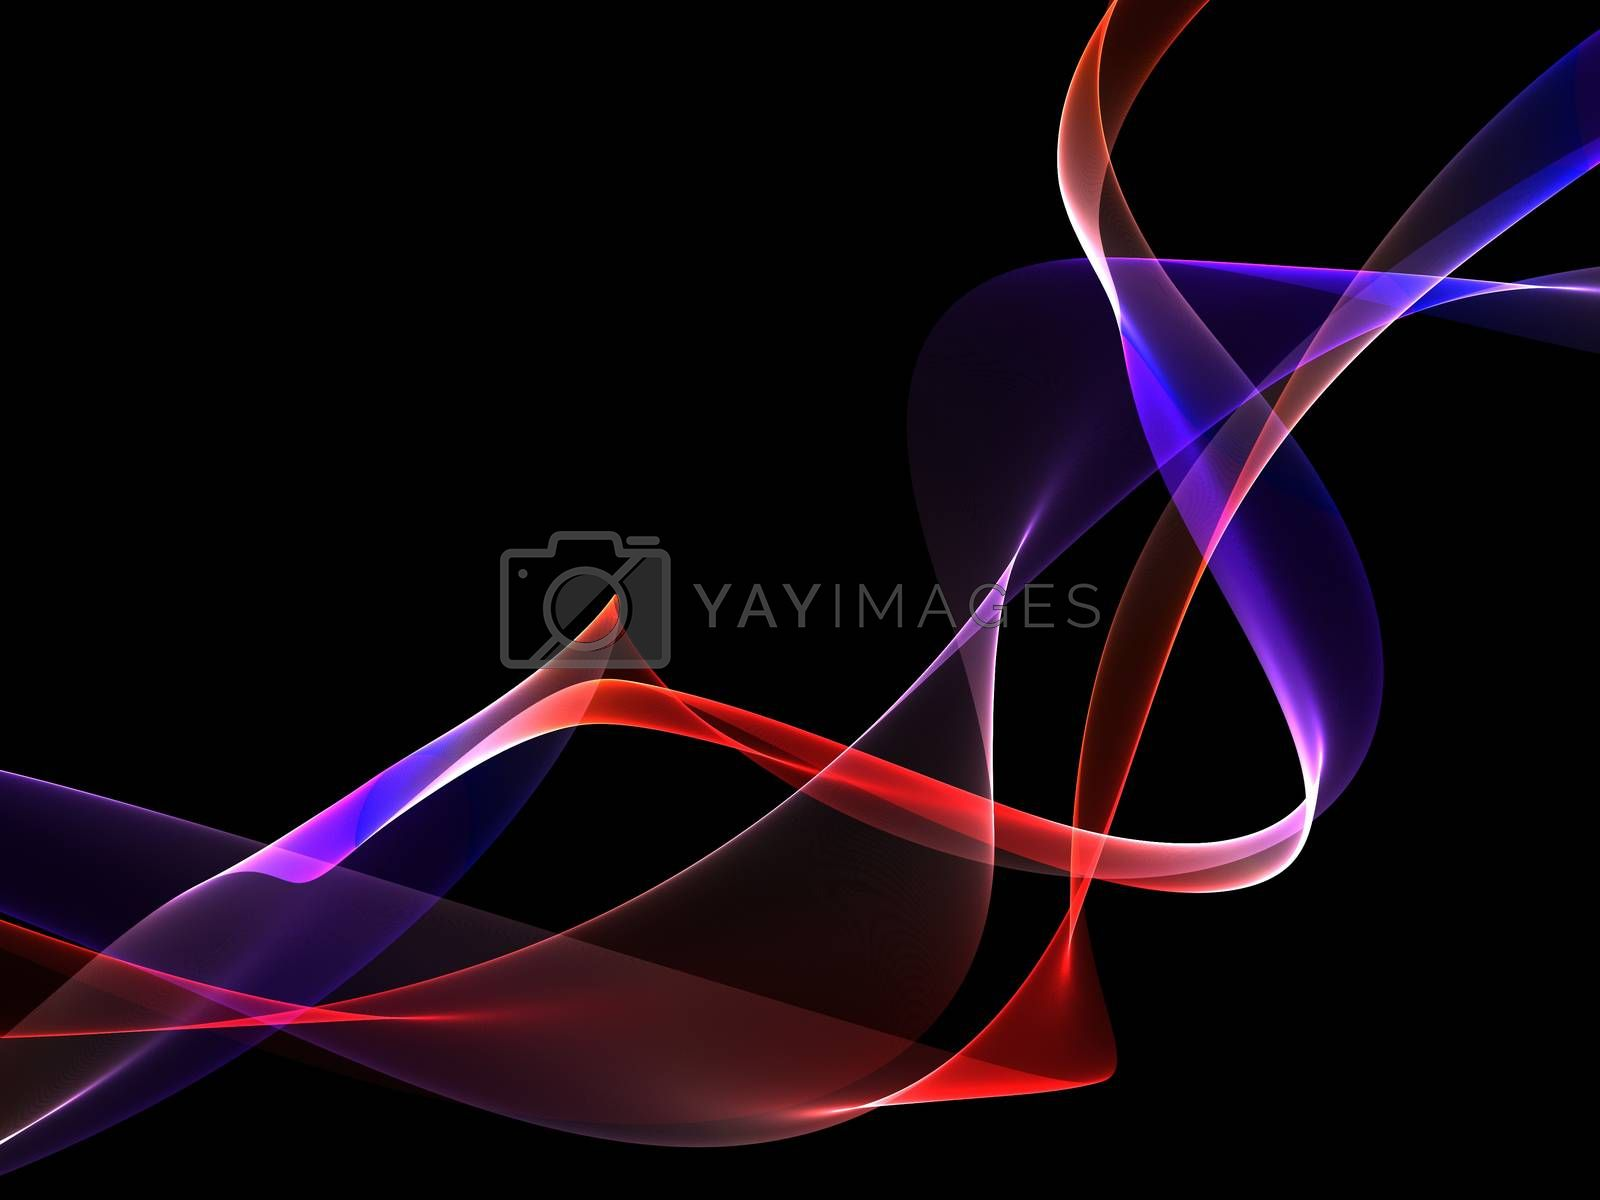 Dark abstract background with a glowing abstract waves by Teerawit Tj-rabbit